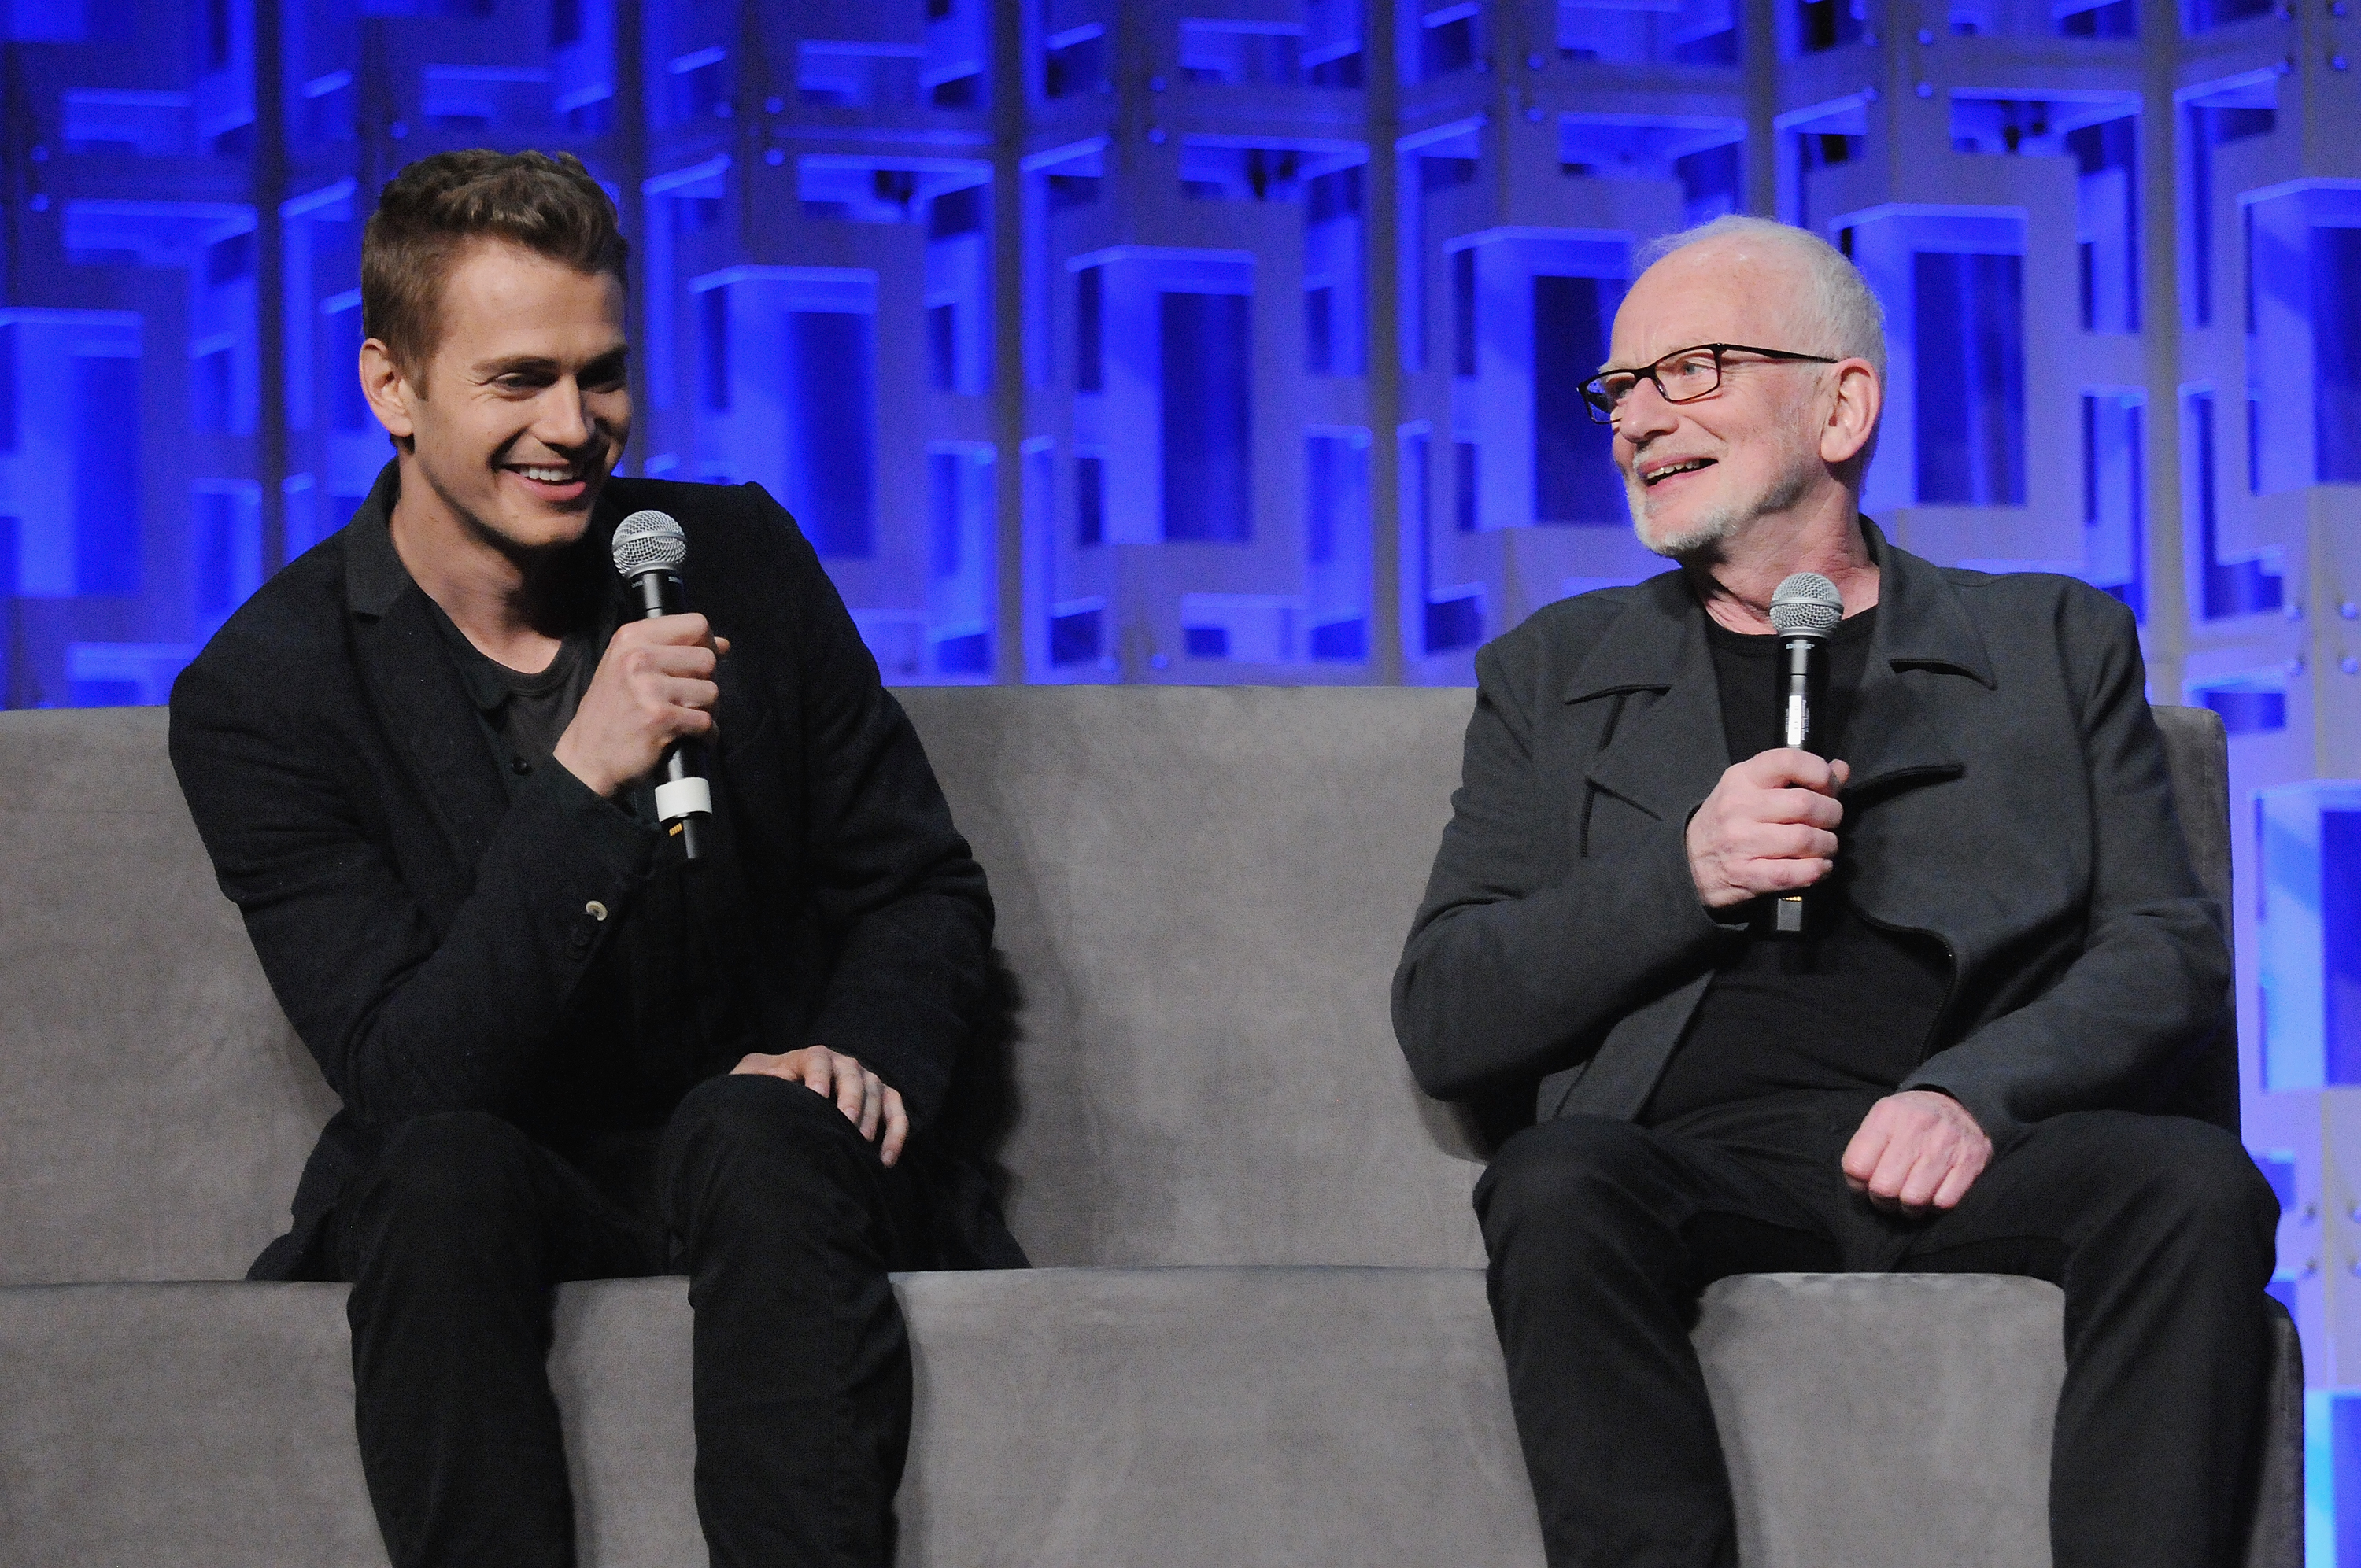 ORLANDO, FL - APRIL 13:  Hayden Christensen and Ian McDiarmid attend the 40 Years of Star Wars panel during the 2017 Star Wars Celebration at Orange County Convention Center on April 13, 2017 in Orlando, Florida.  (Photo by Gerardo Mora/Getty Images for Disney)